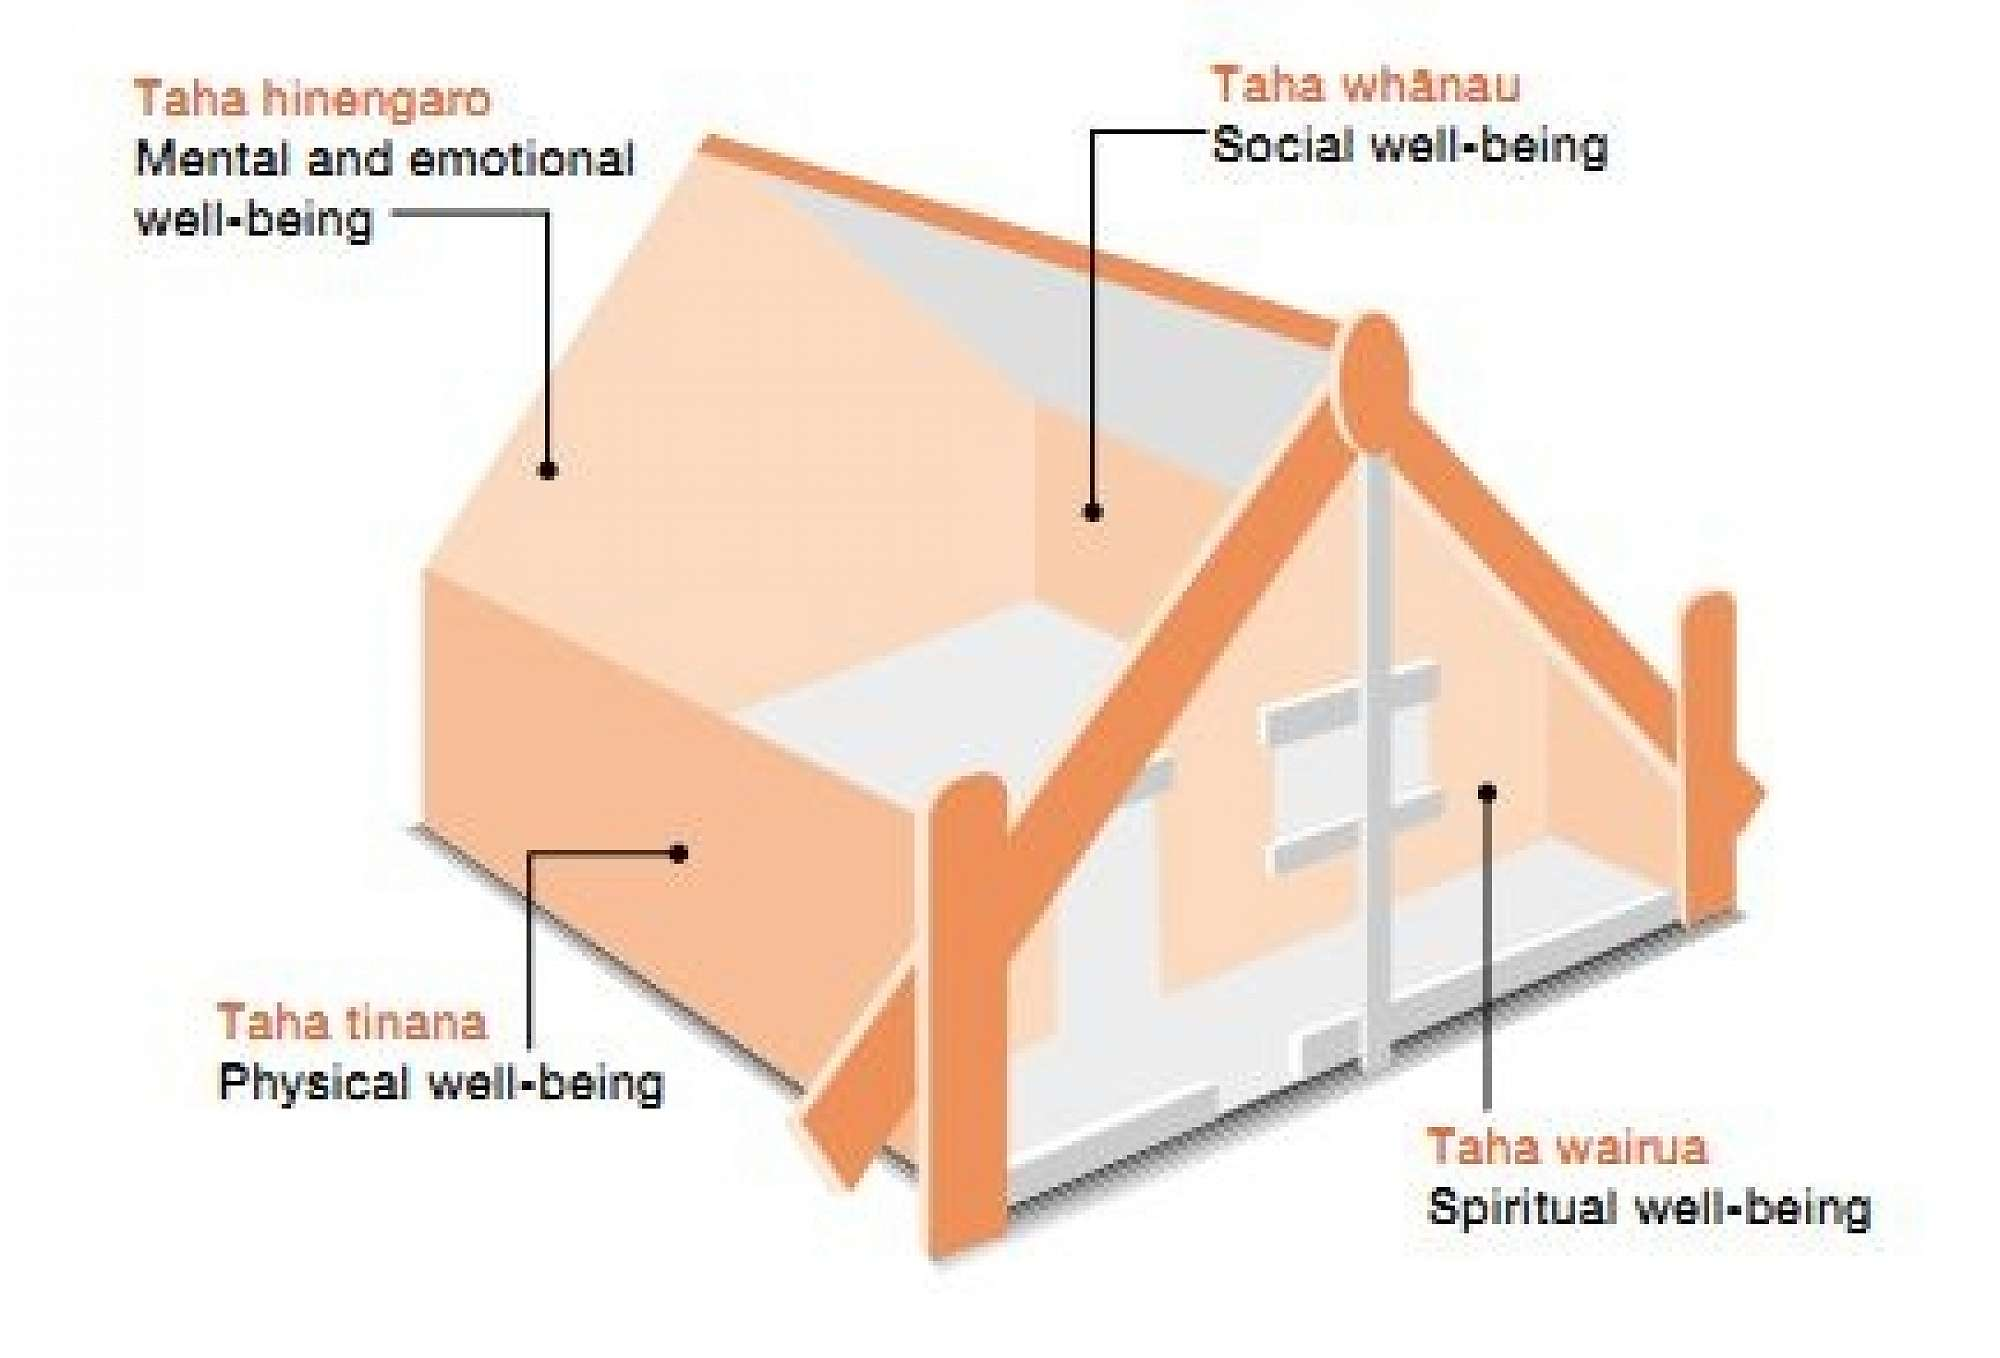 Te Whare Tapa Wha - The 4 walls of a whare/house represent the 4 areas of well-being (hauora).